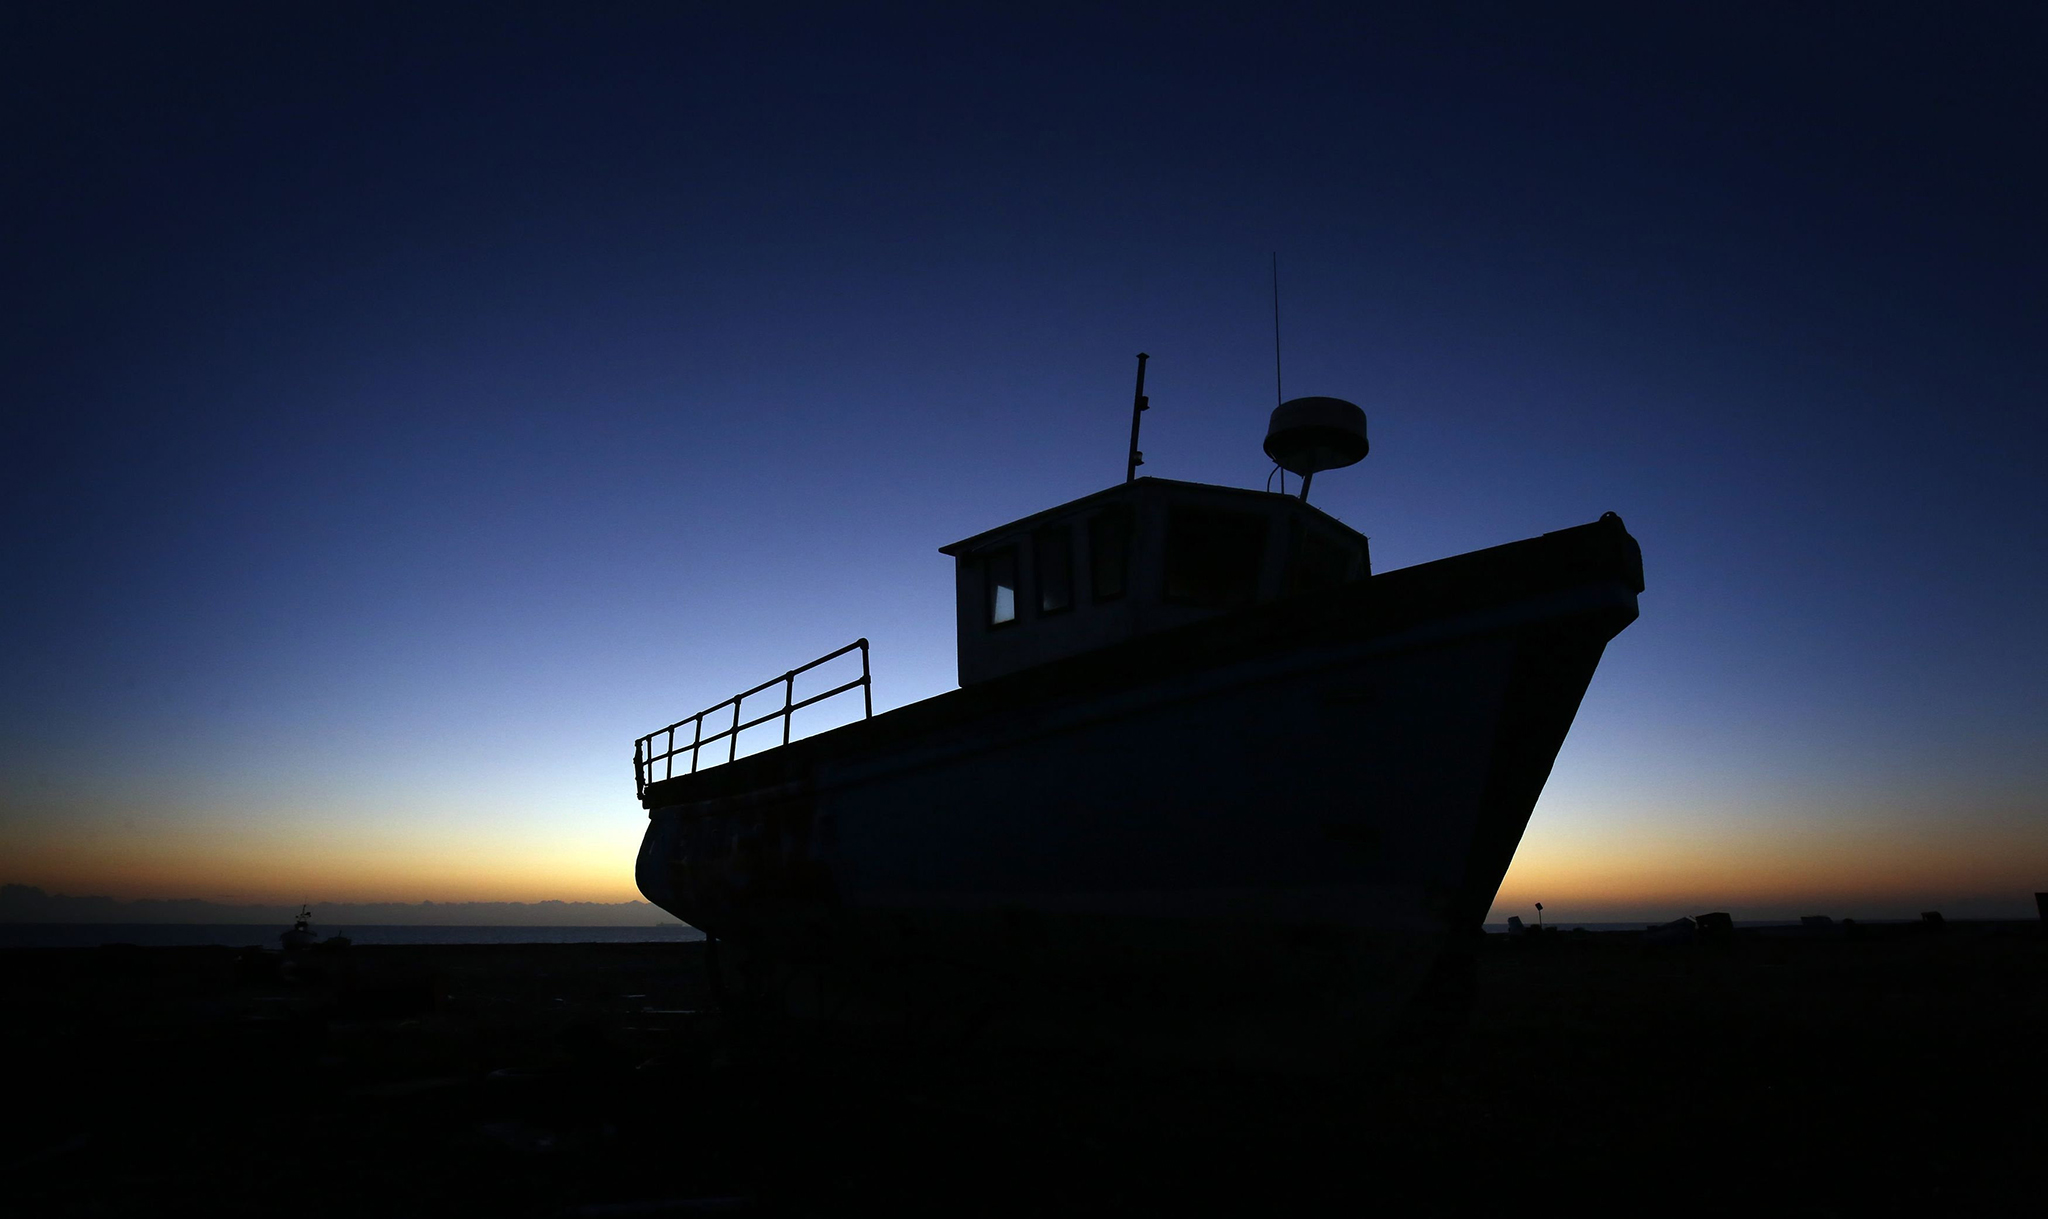 The sun rises behind a fishing boat on the beach in Dungeness, Kent. PRESS ASSOCIATION Photo. Picture date: Thursday January 5, 2017. See PA story WEATHER Cold. Photo credit should read: Gareth Fuller/PA Wire